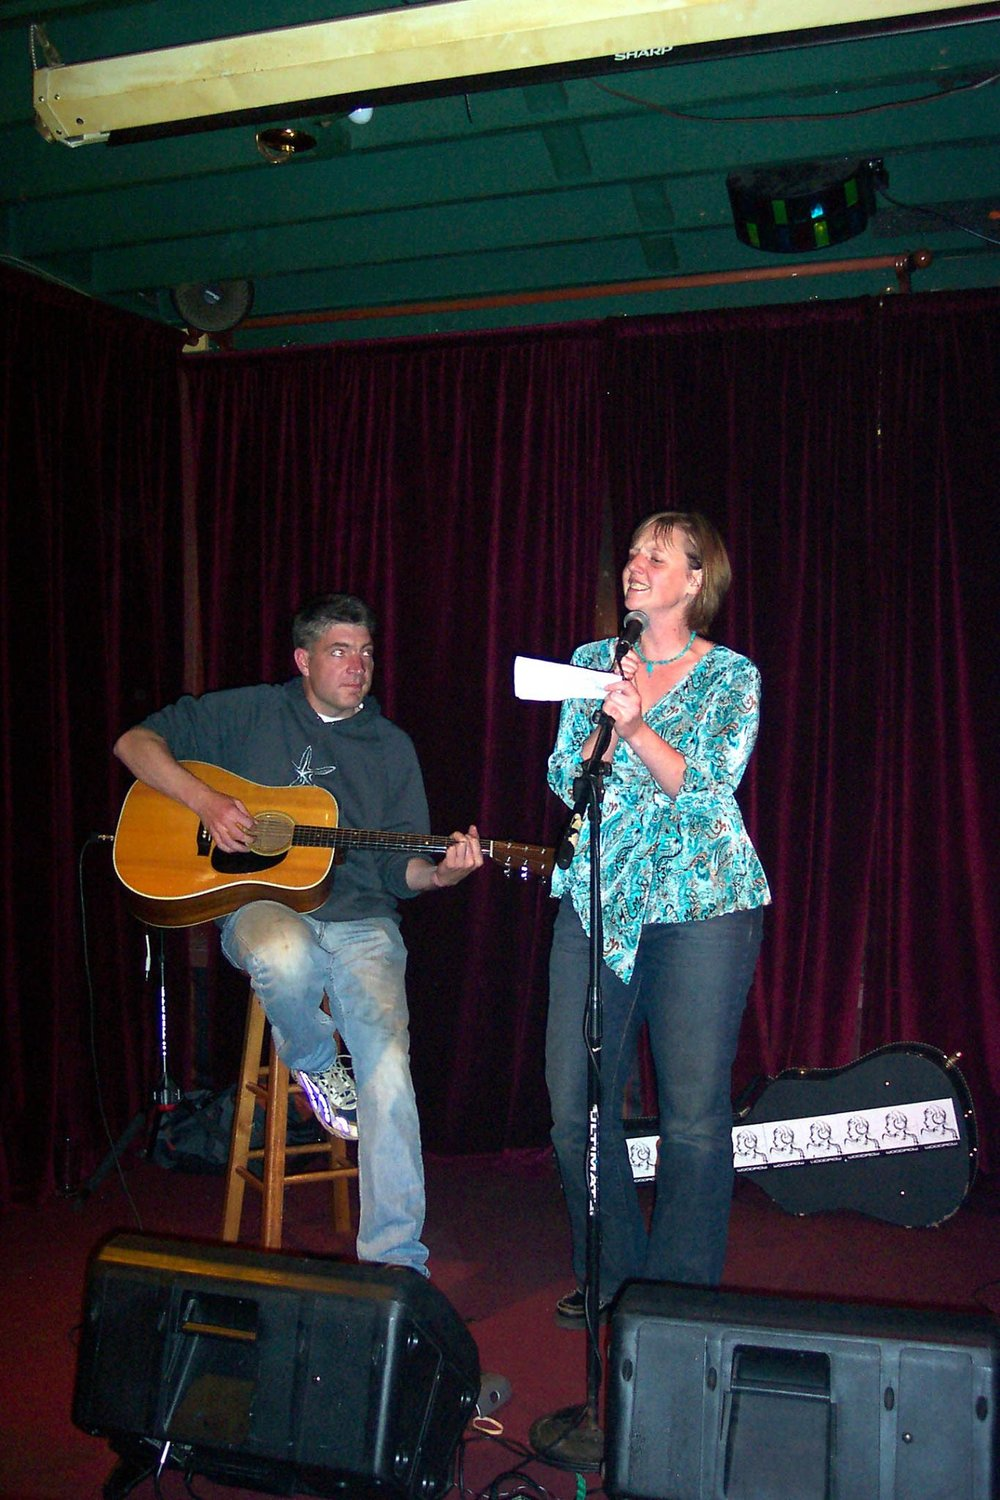 Lynne Snifka singing for her Muskrat Love story. / Courtesy of Robert Meyerowitz